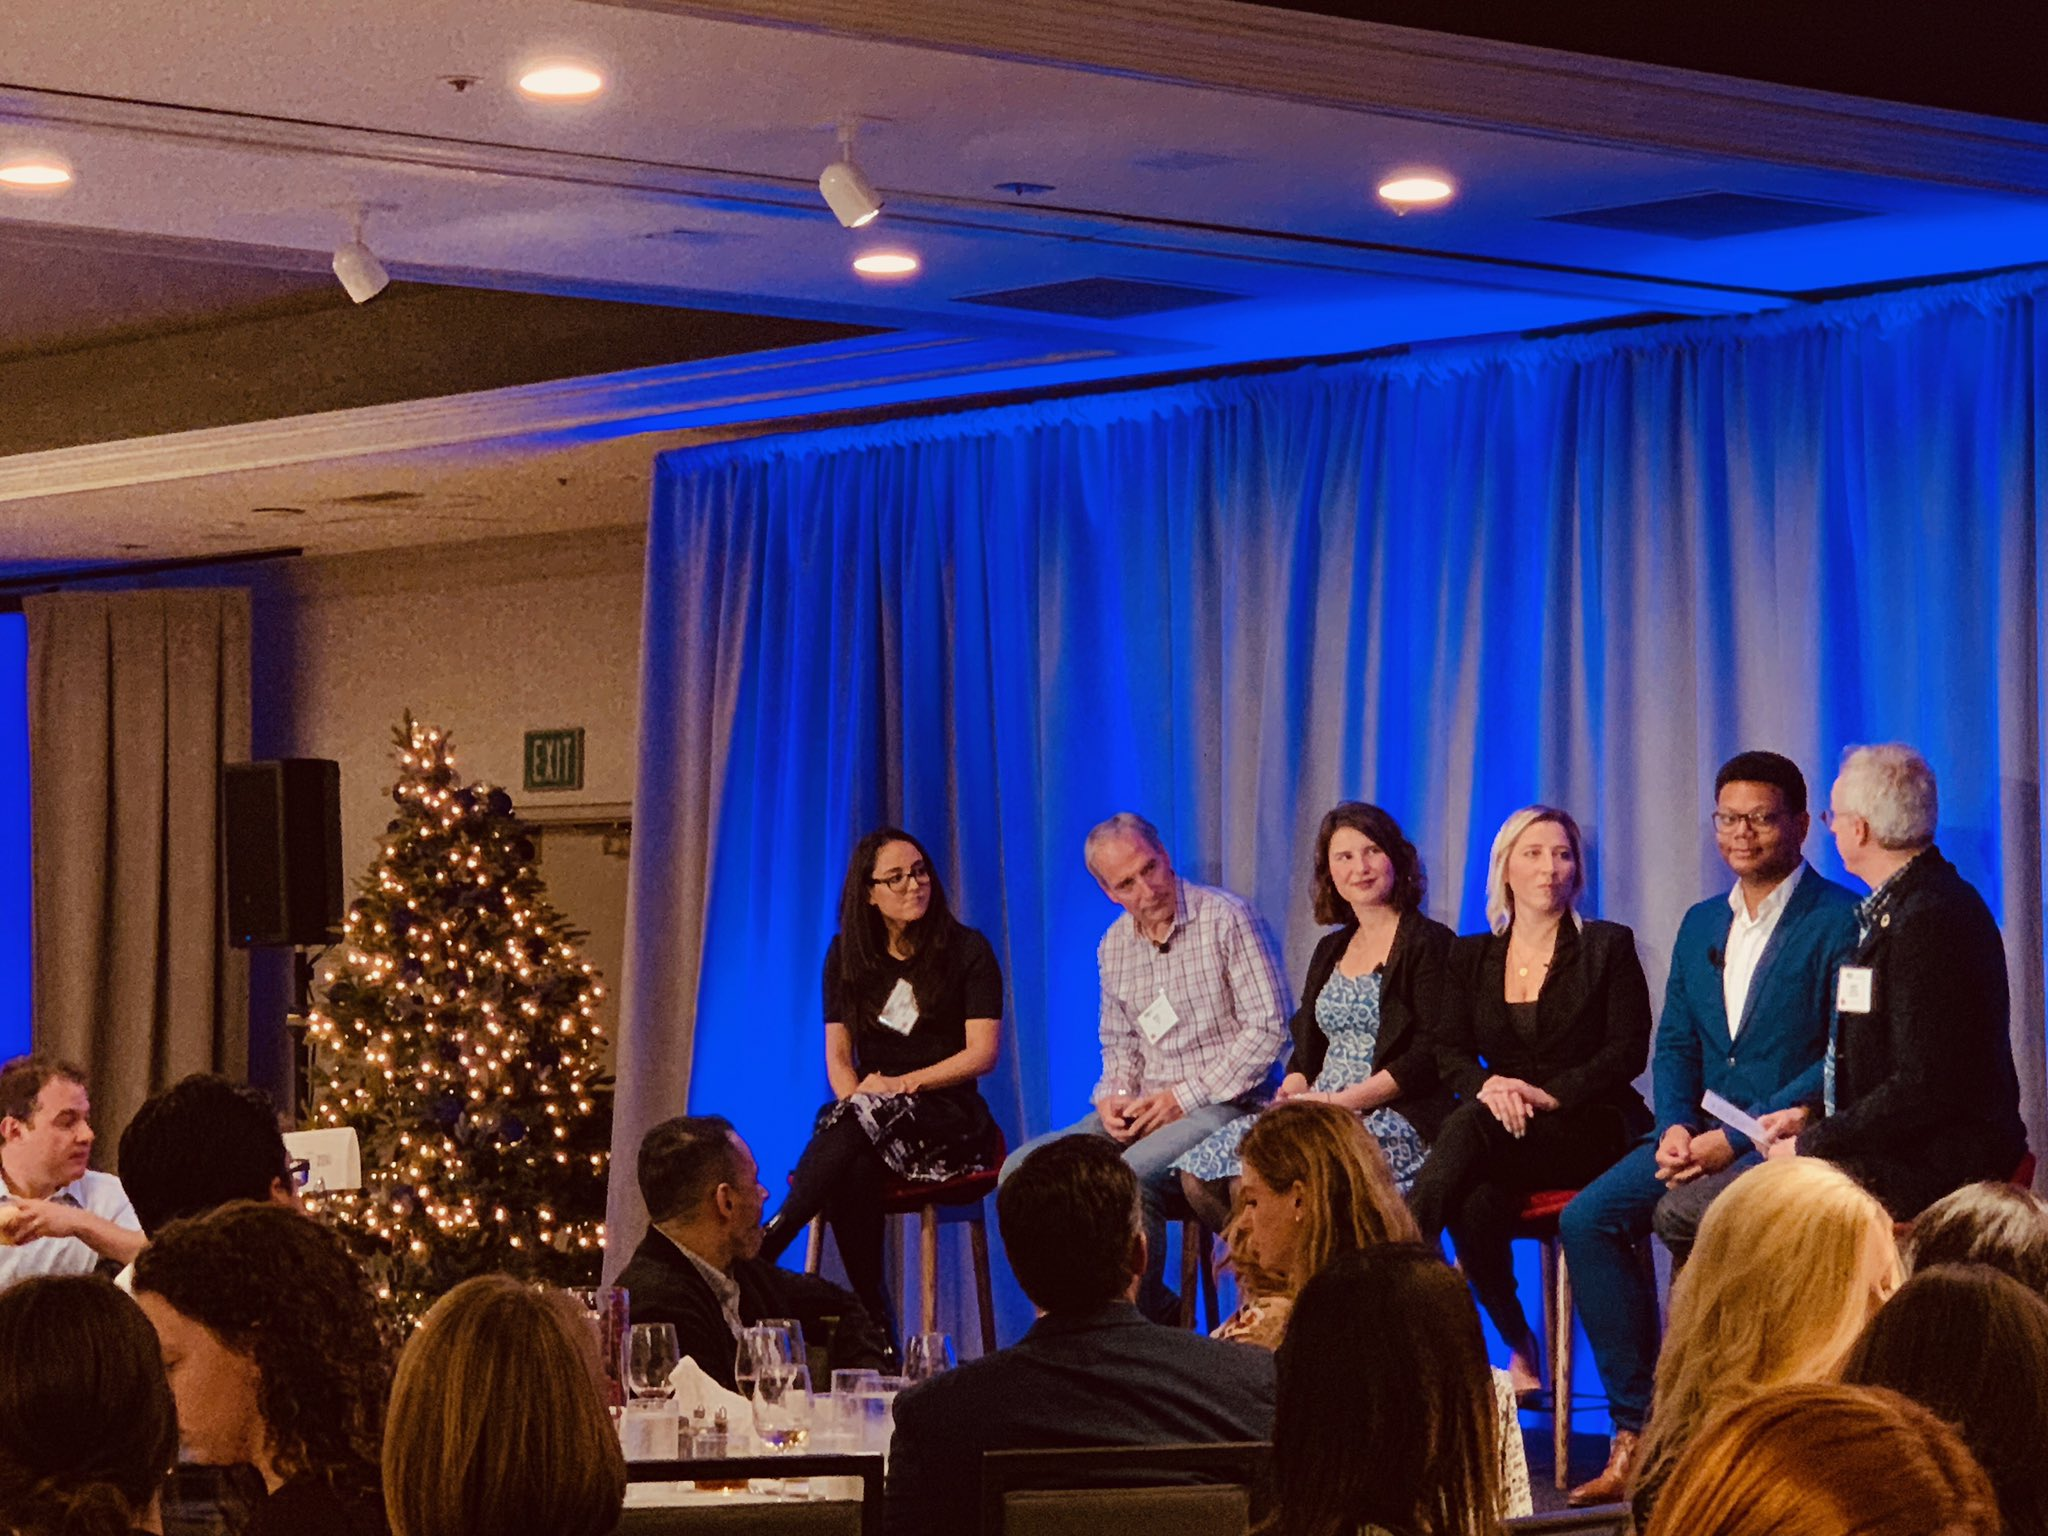 Journalists Discuss the Future at PRSA Silicon Valley 2018 Media Predicts